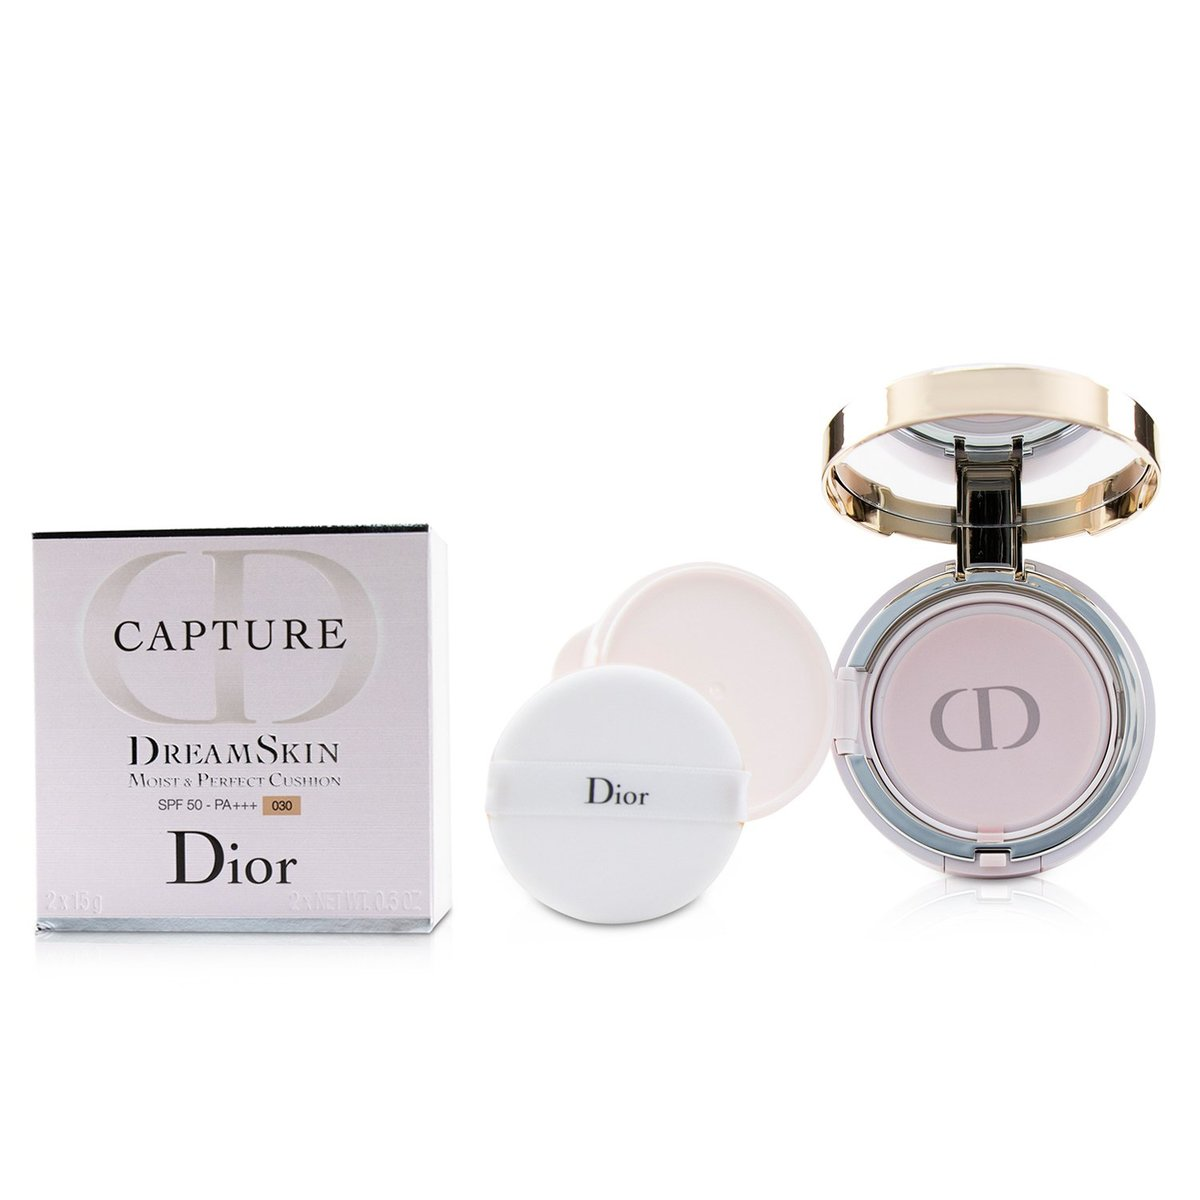 Capture Dreamskin Moist & Perfect Cushion SPF 50 With Extra Refill - # 030 (Medium Beige  -[Parallel